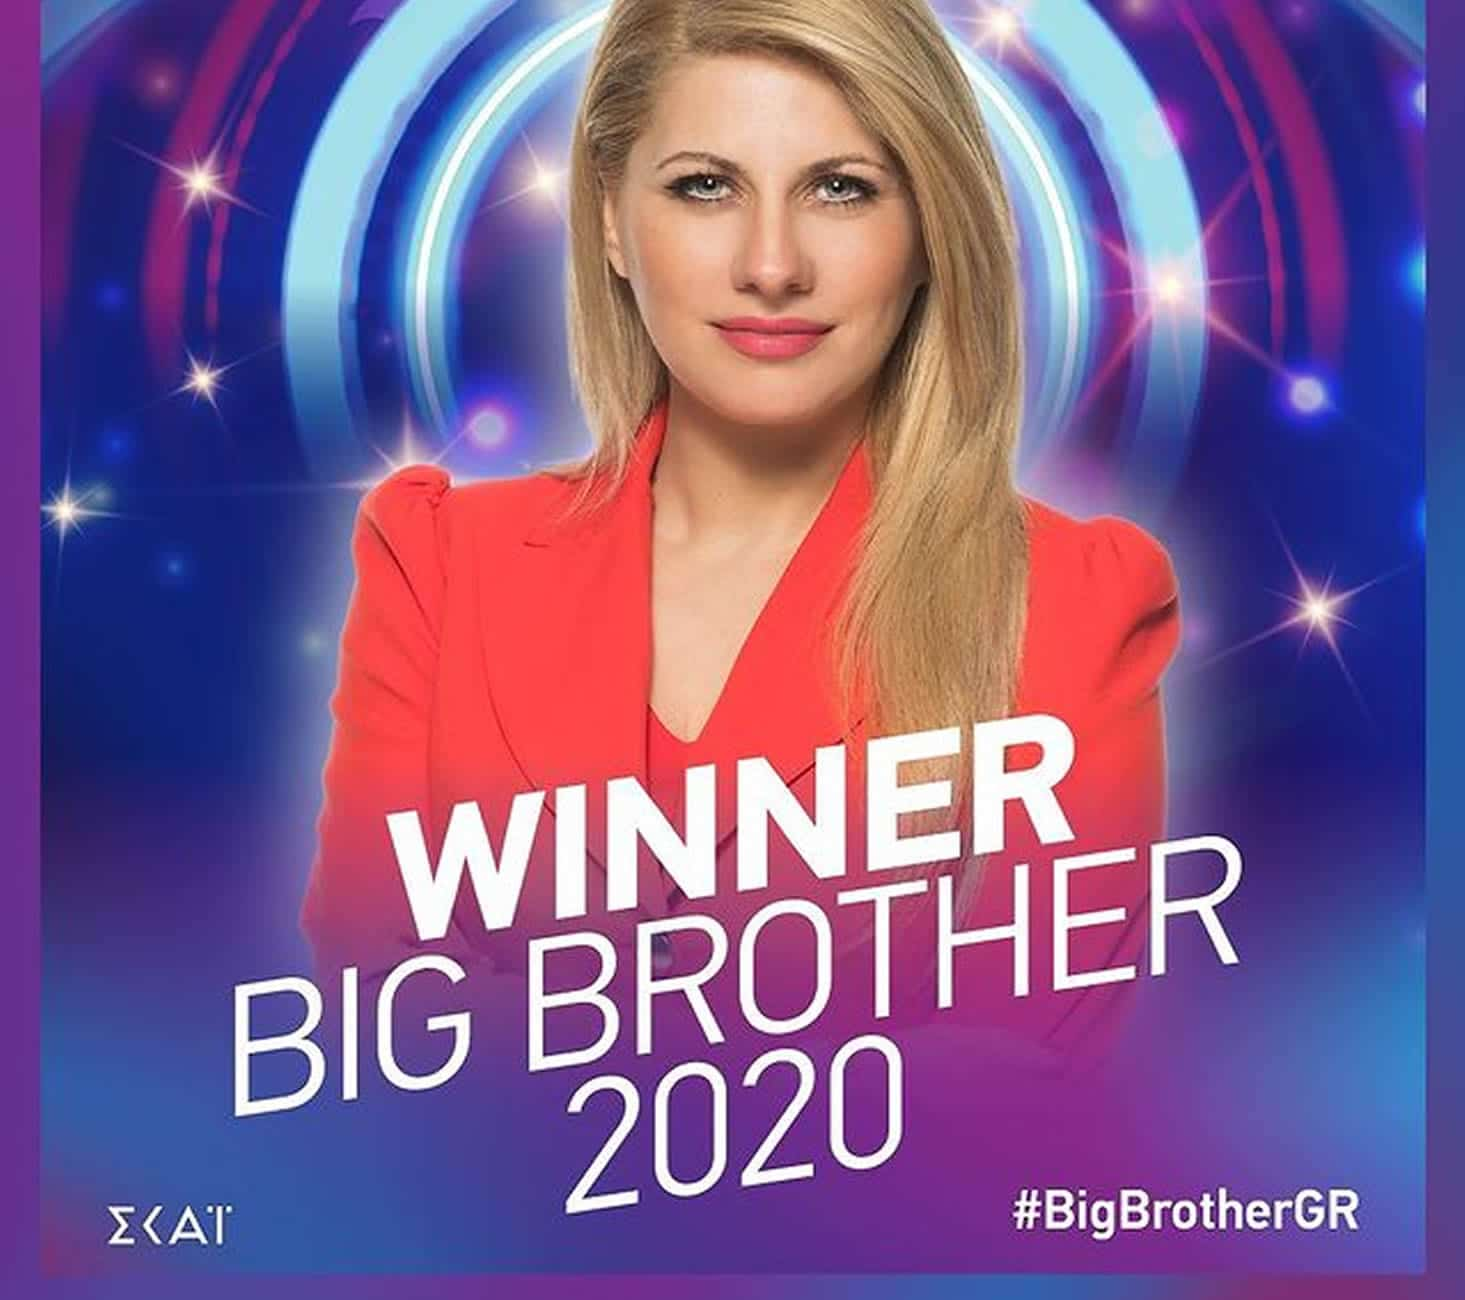 Big Brother Twitter